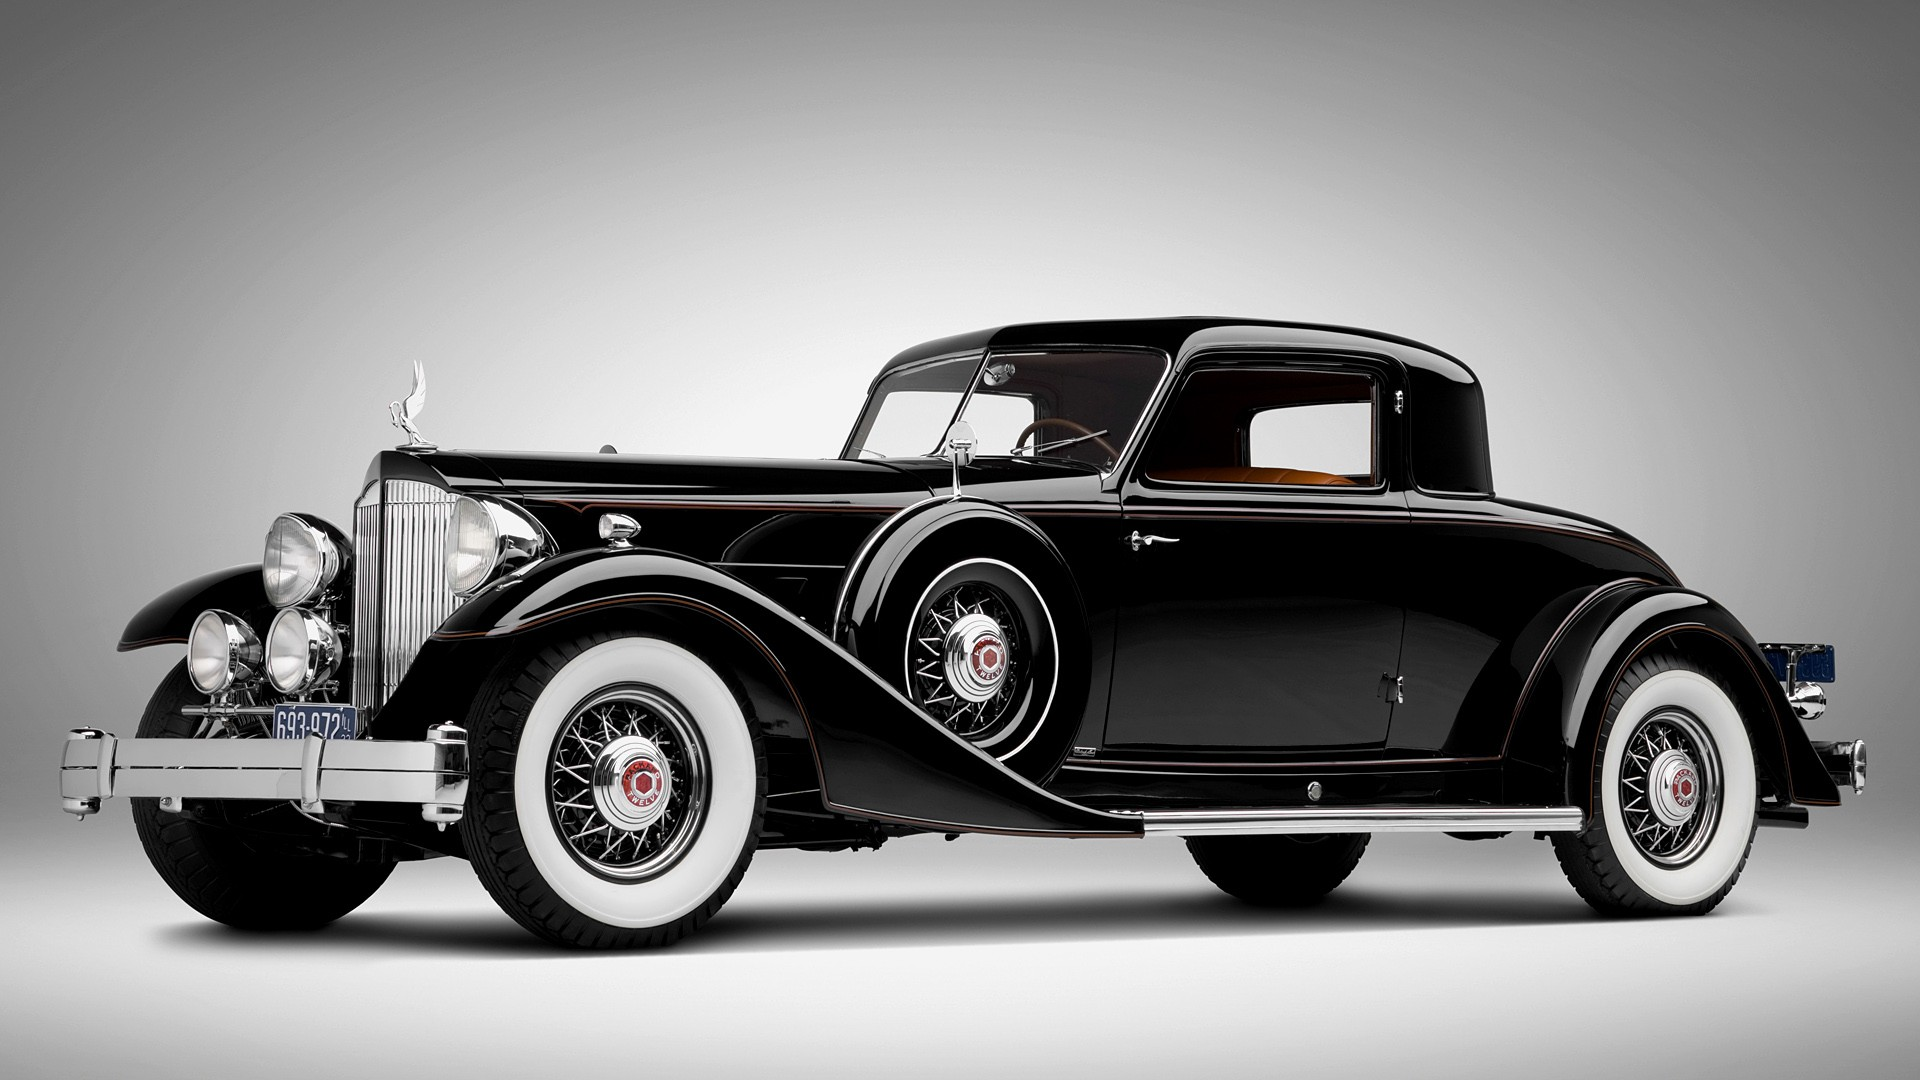 Classic Black Rolls Royce Luxury Car by ROGUE-RATTLESNAKE on ...